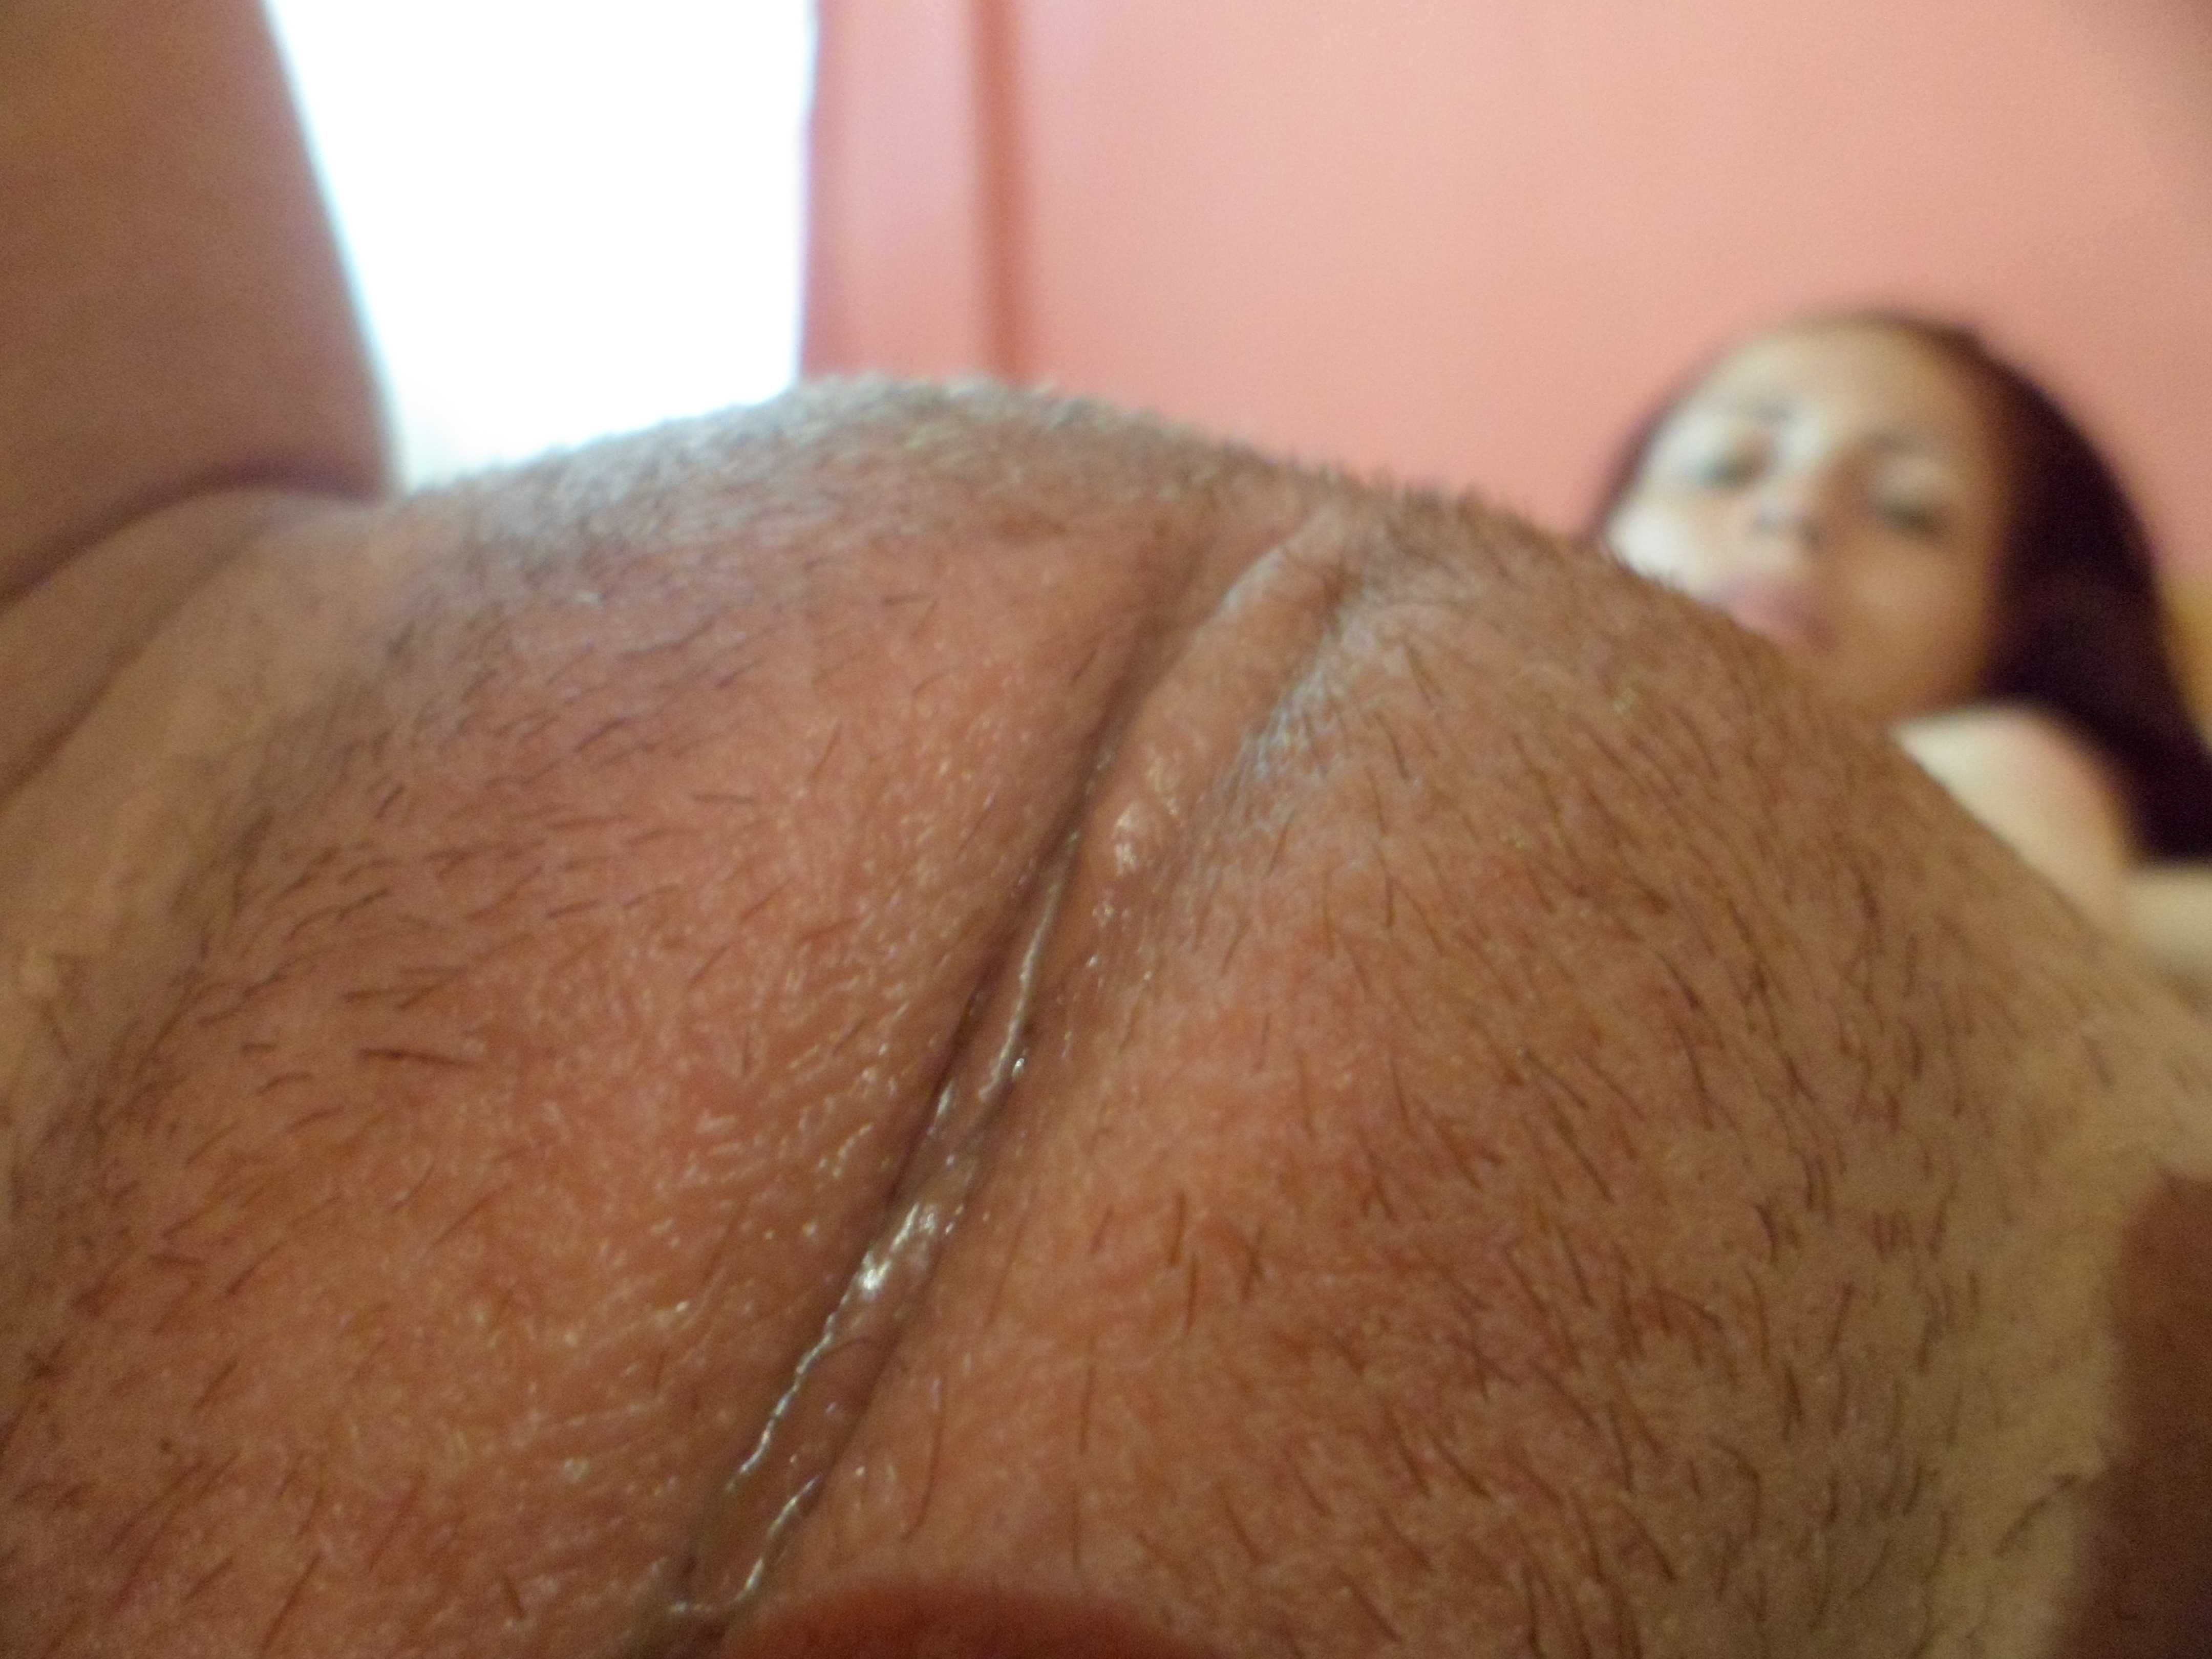 face rider sex pic